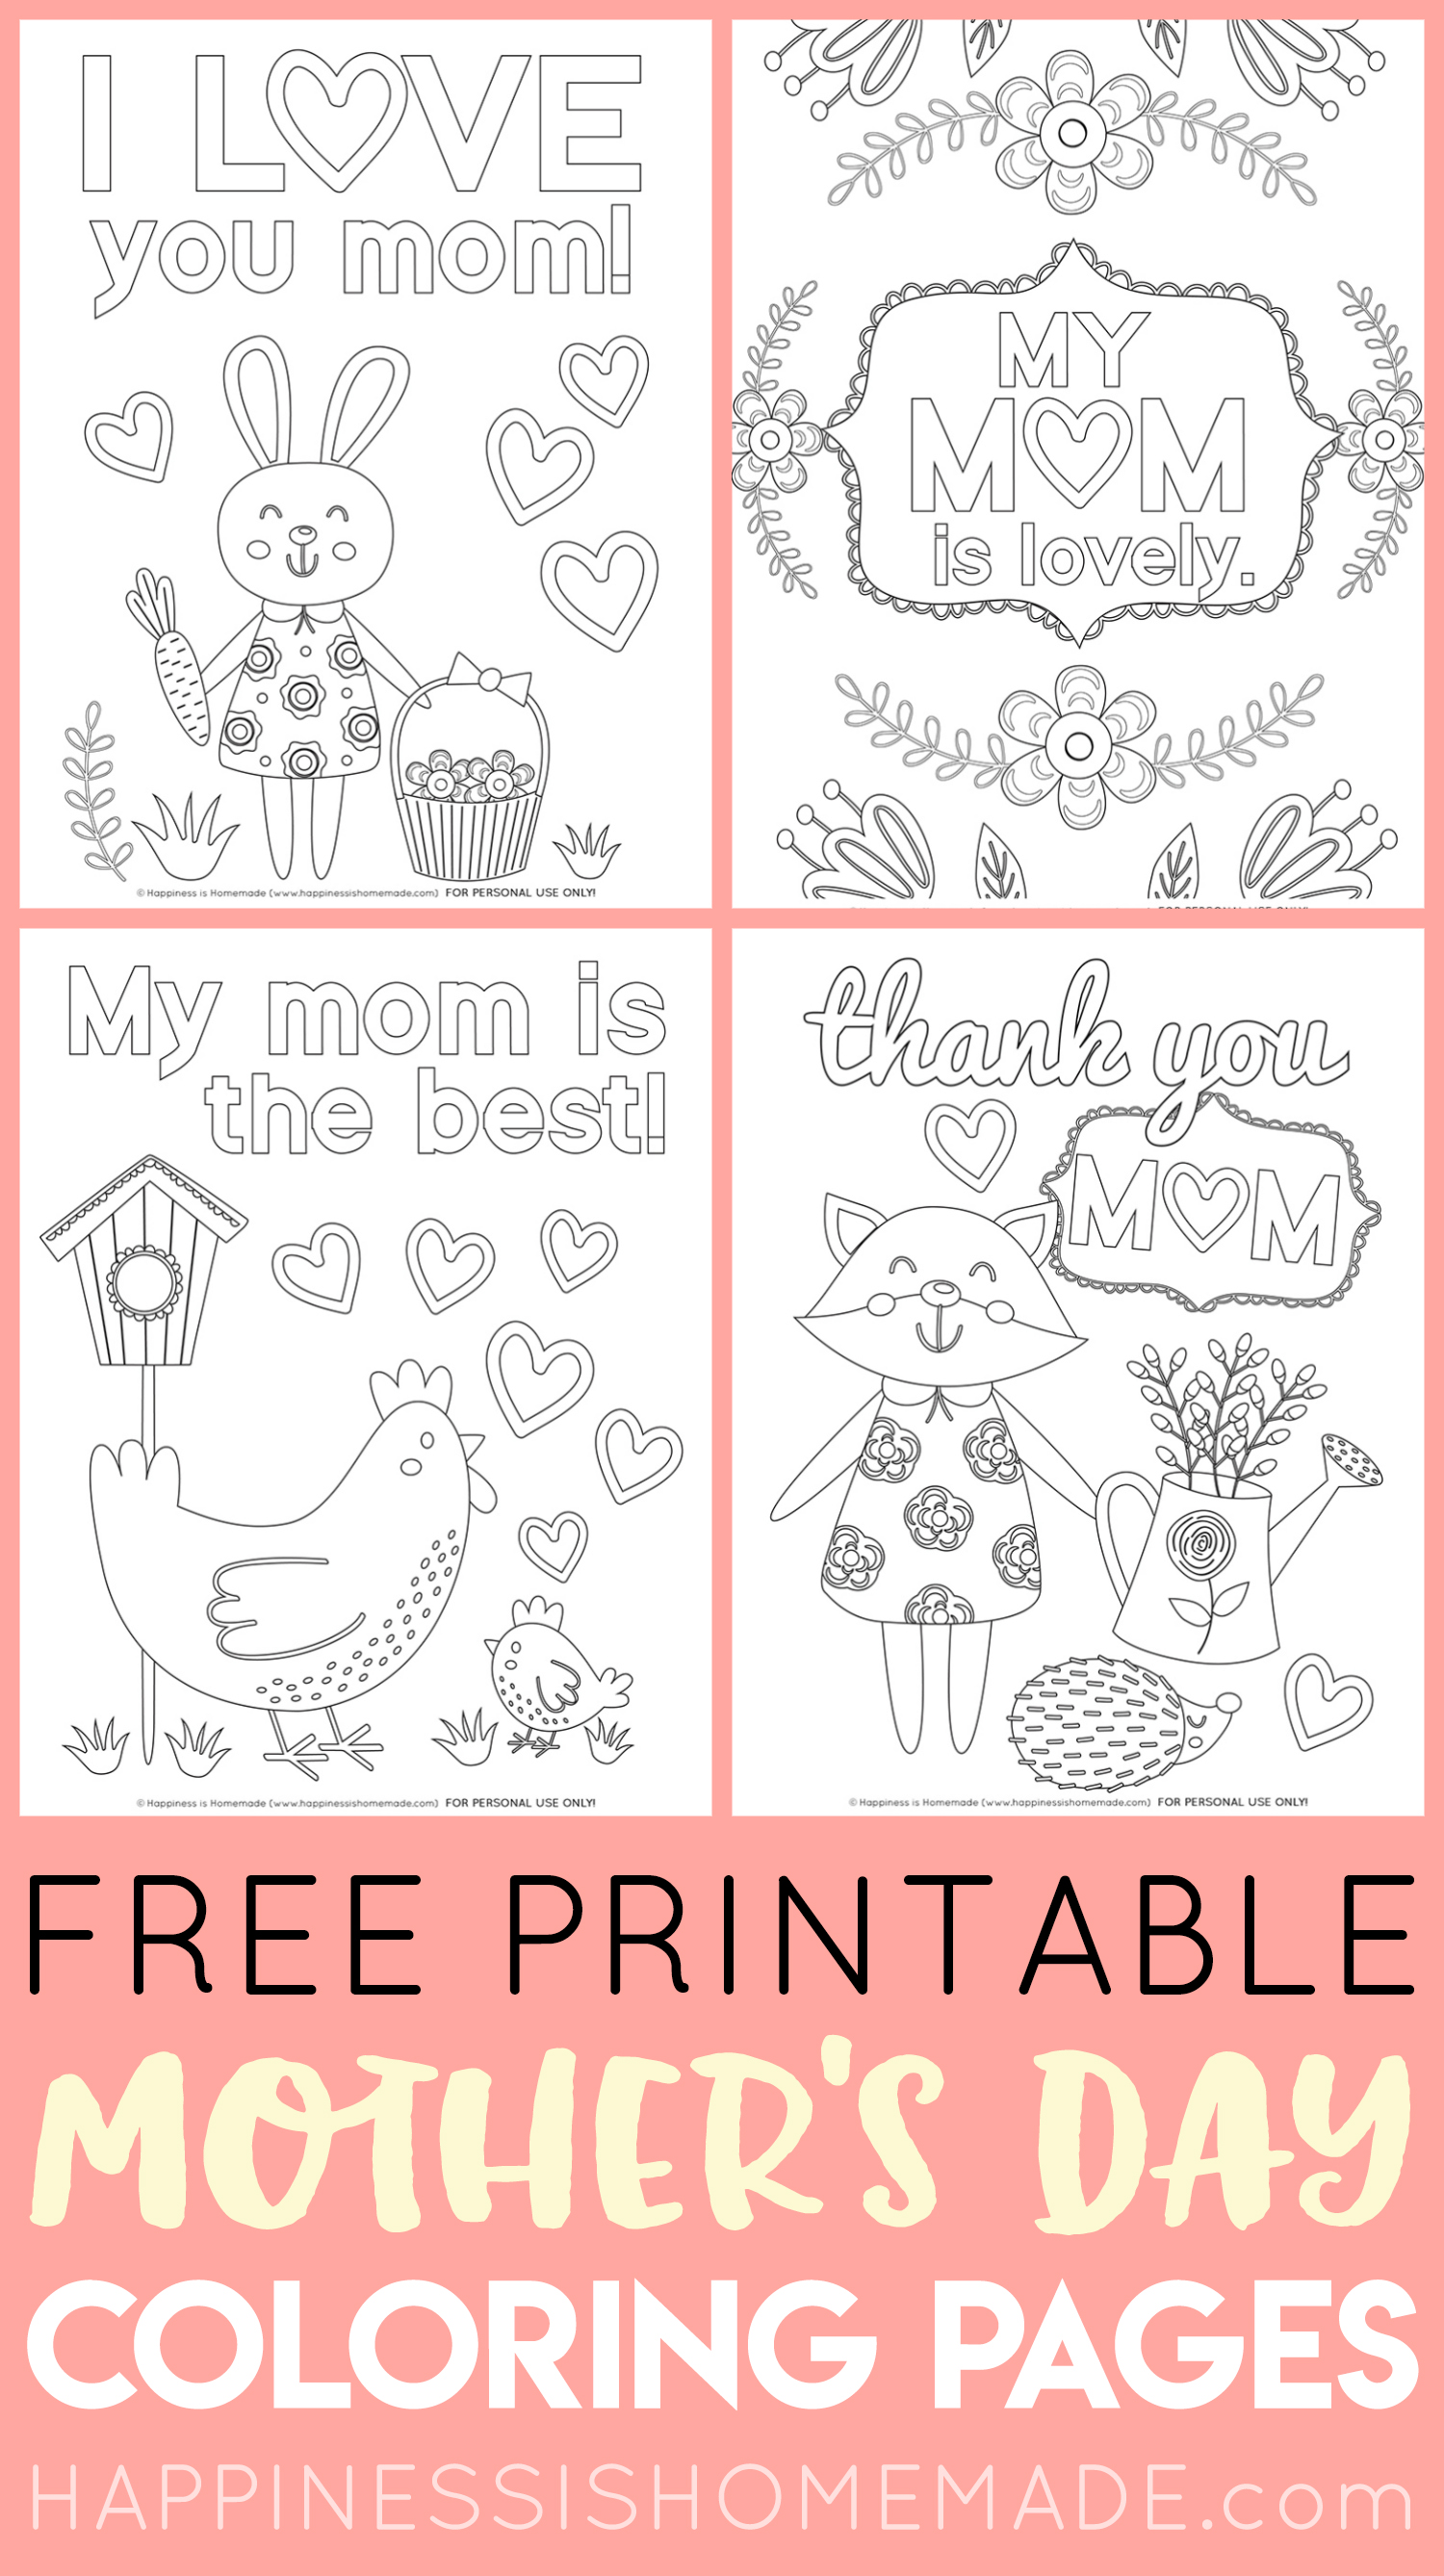 Free Printable Mother's Day Coloring Page Set